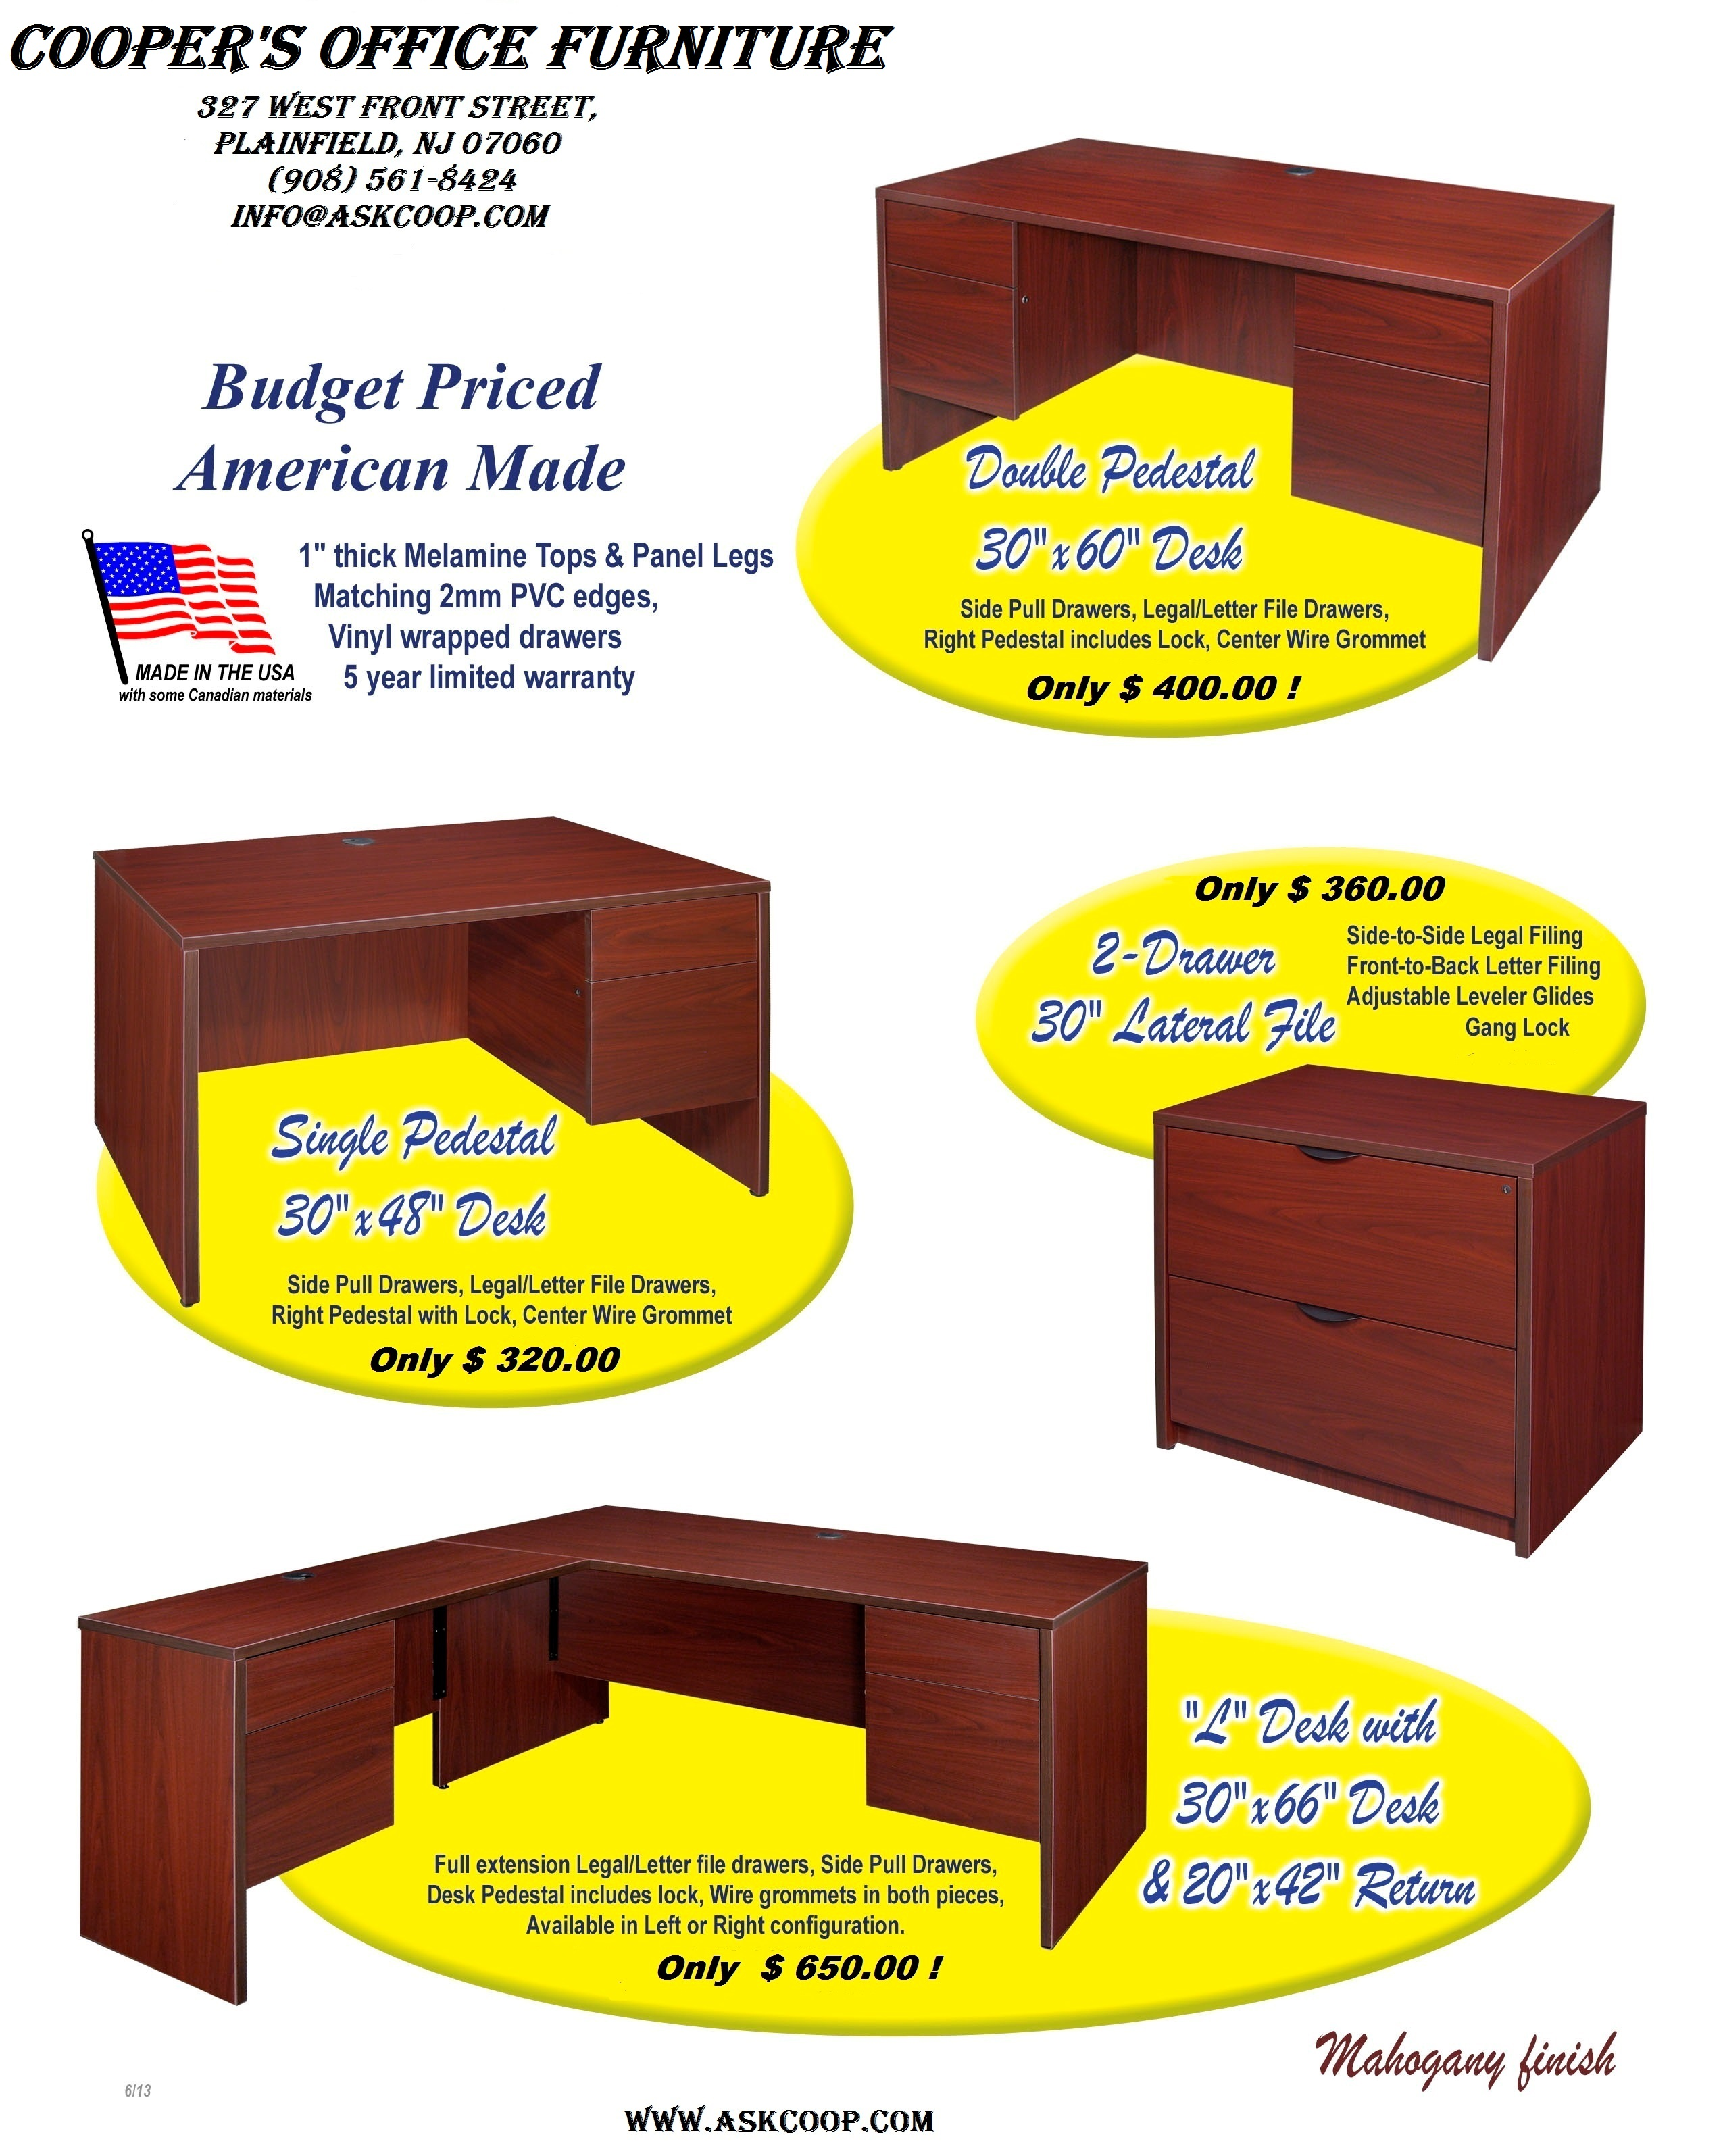 Coopers Office Furniture Plainfield Nj